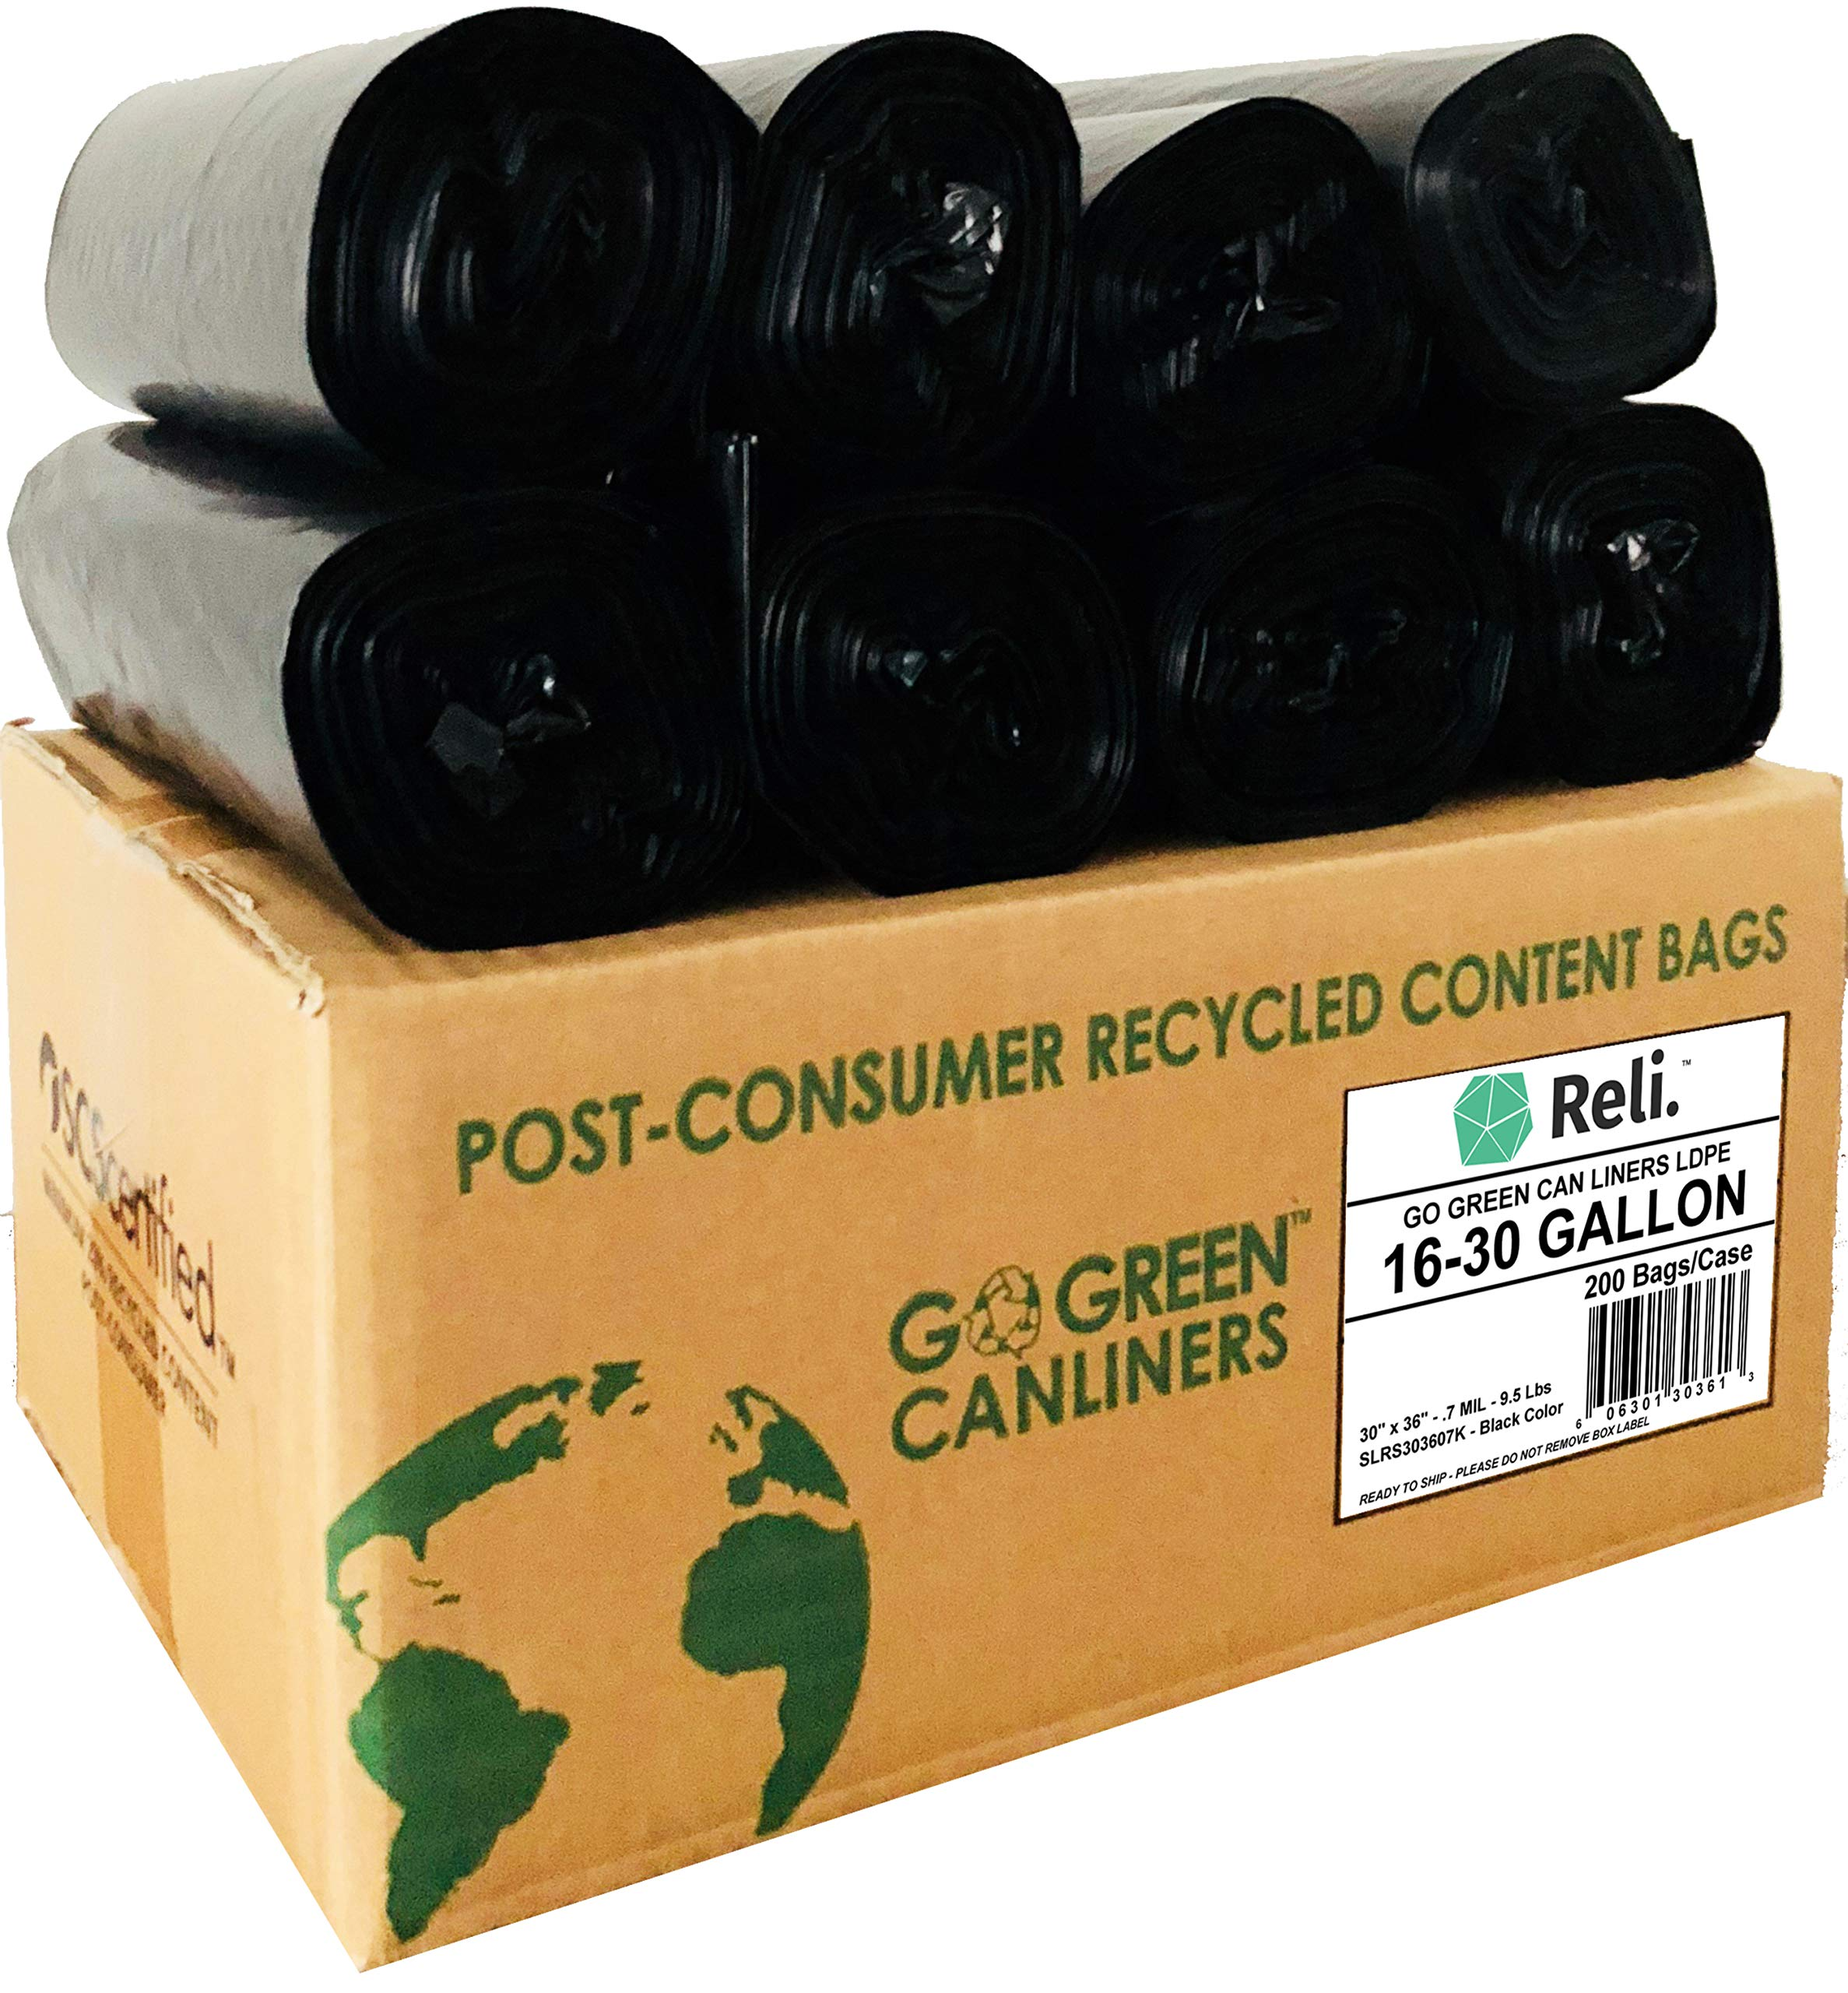 Reli. Recyclable Eco Friendly 16-30 Gallon Trash Bags (200 Count, Black) Made from Recycled Material - 16 Gallon - 30 Gallon Black Garbage Bags by Reli.